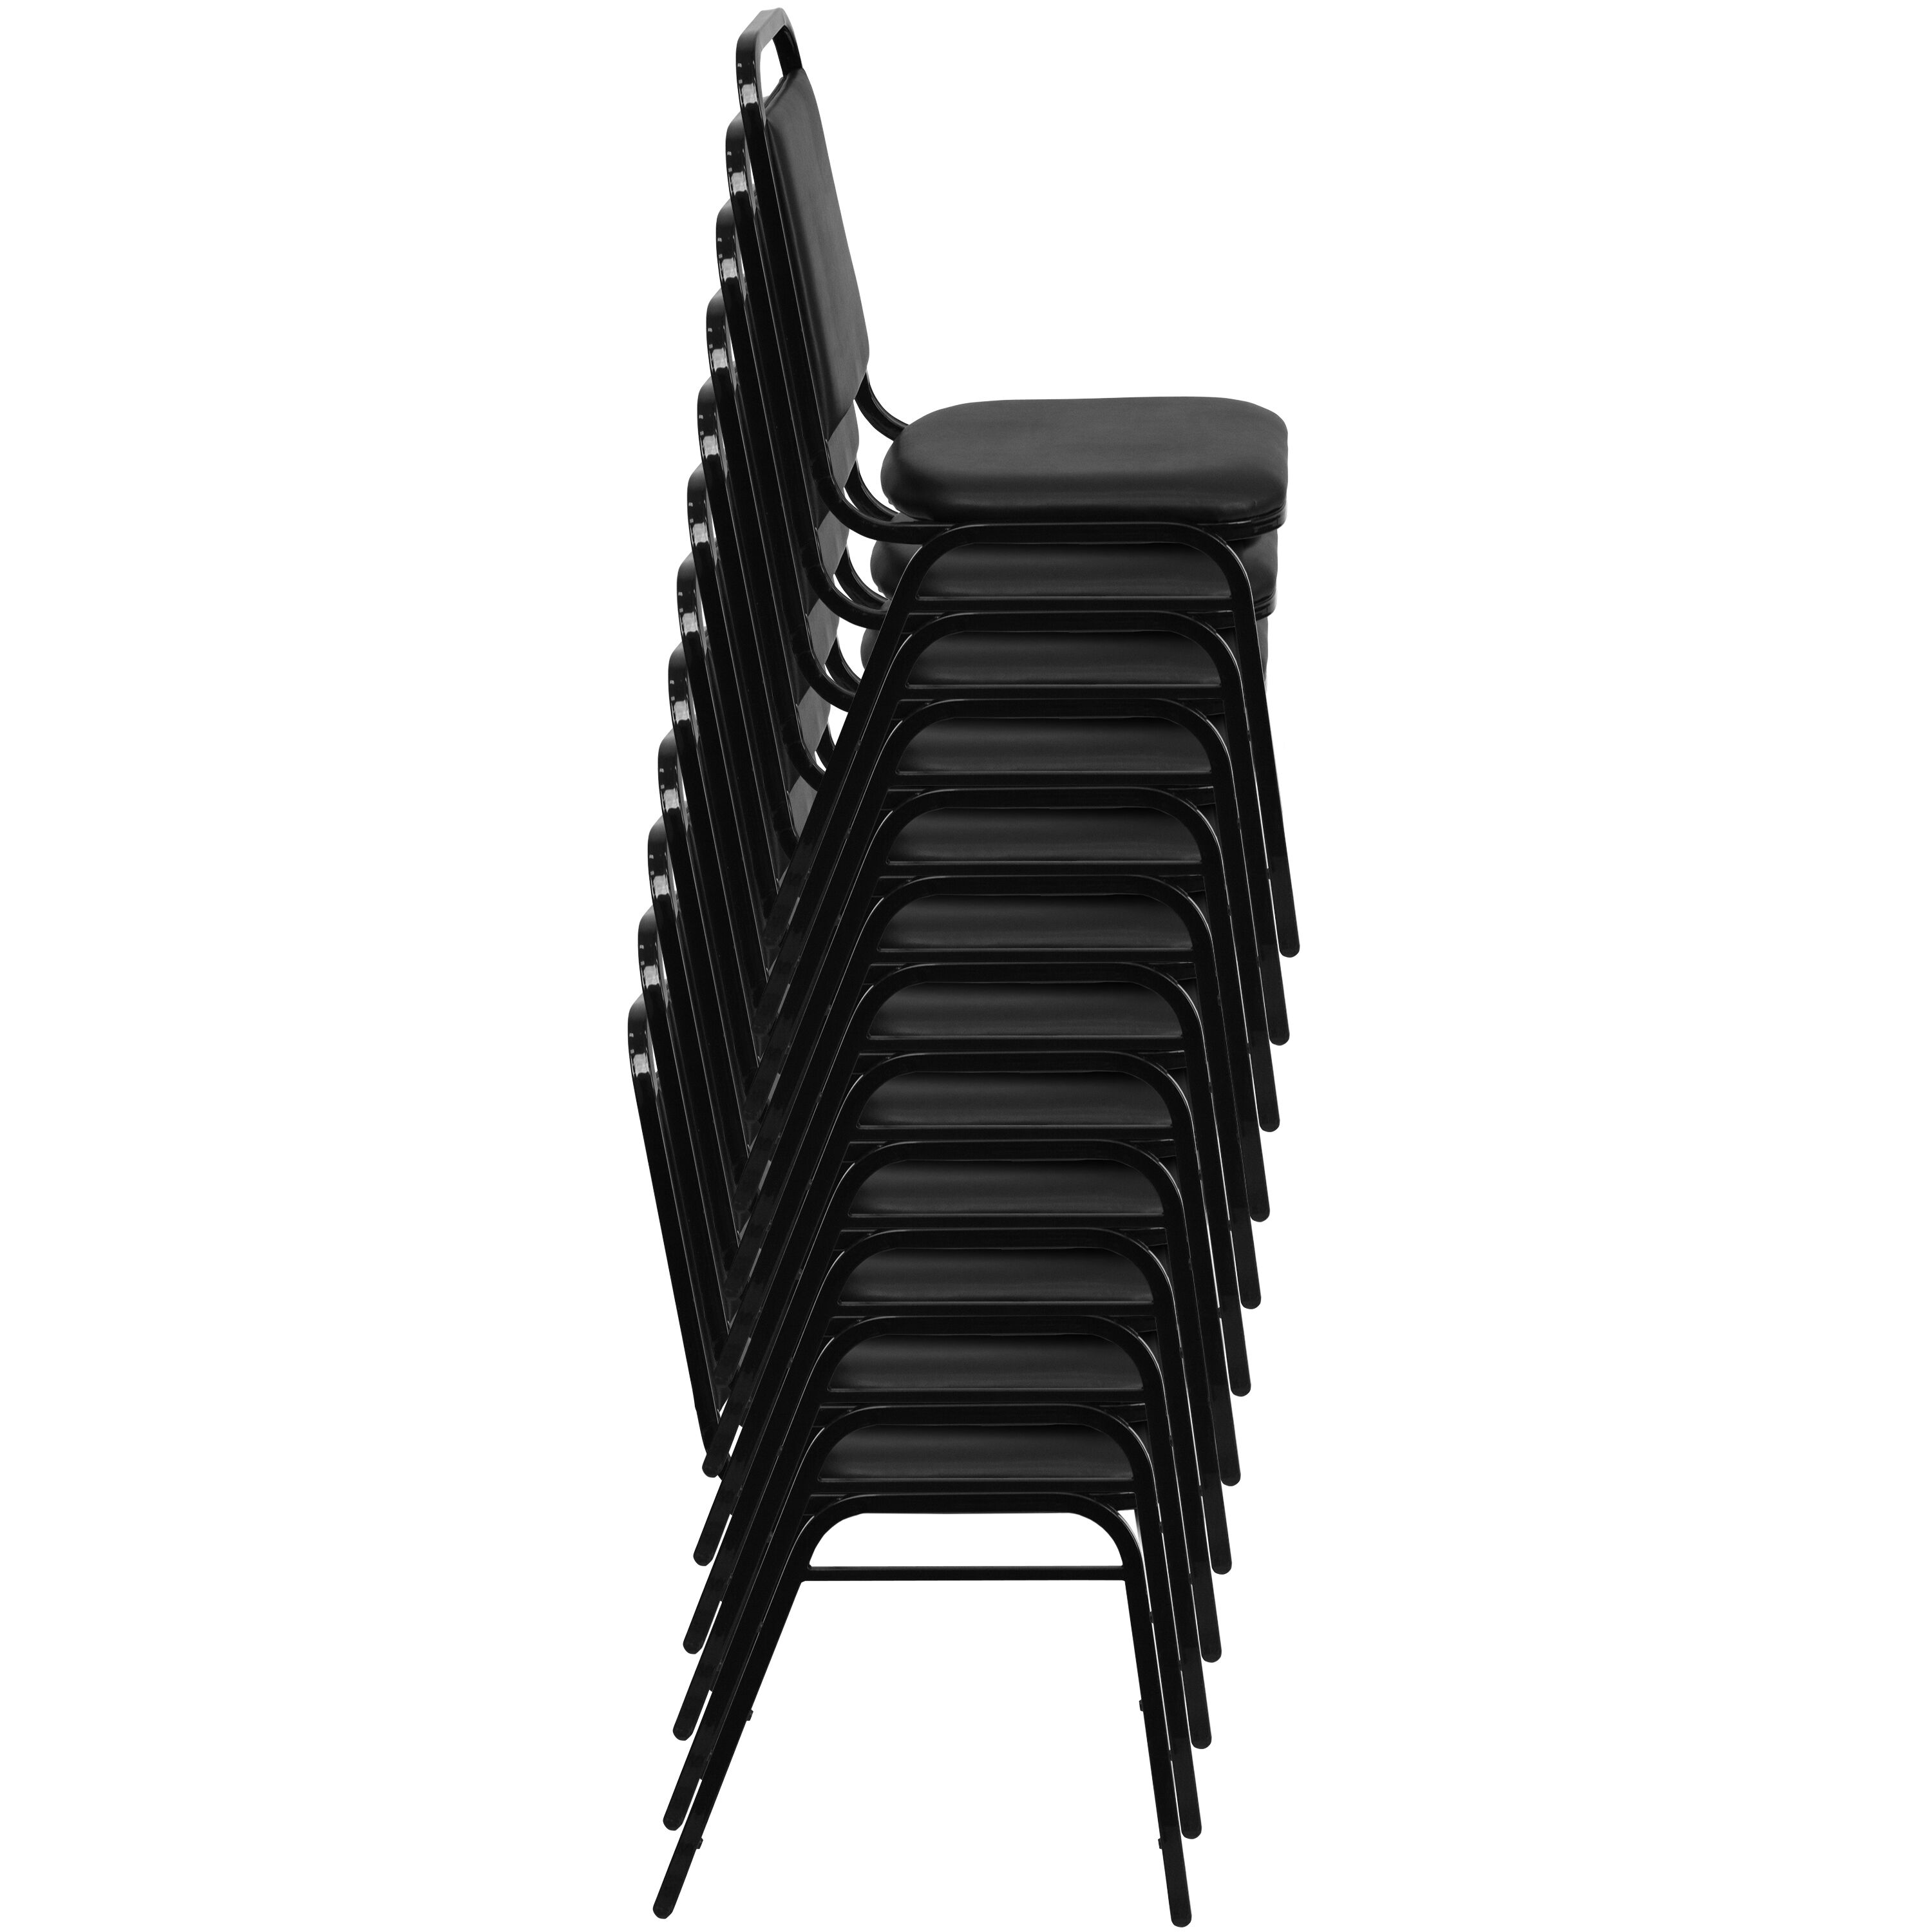 StackChairs4Less